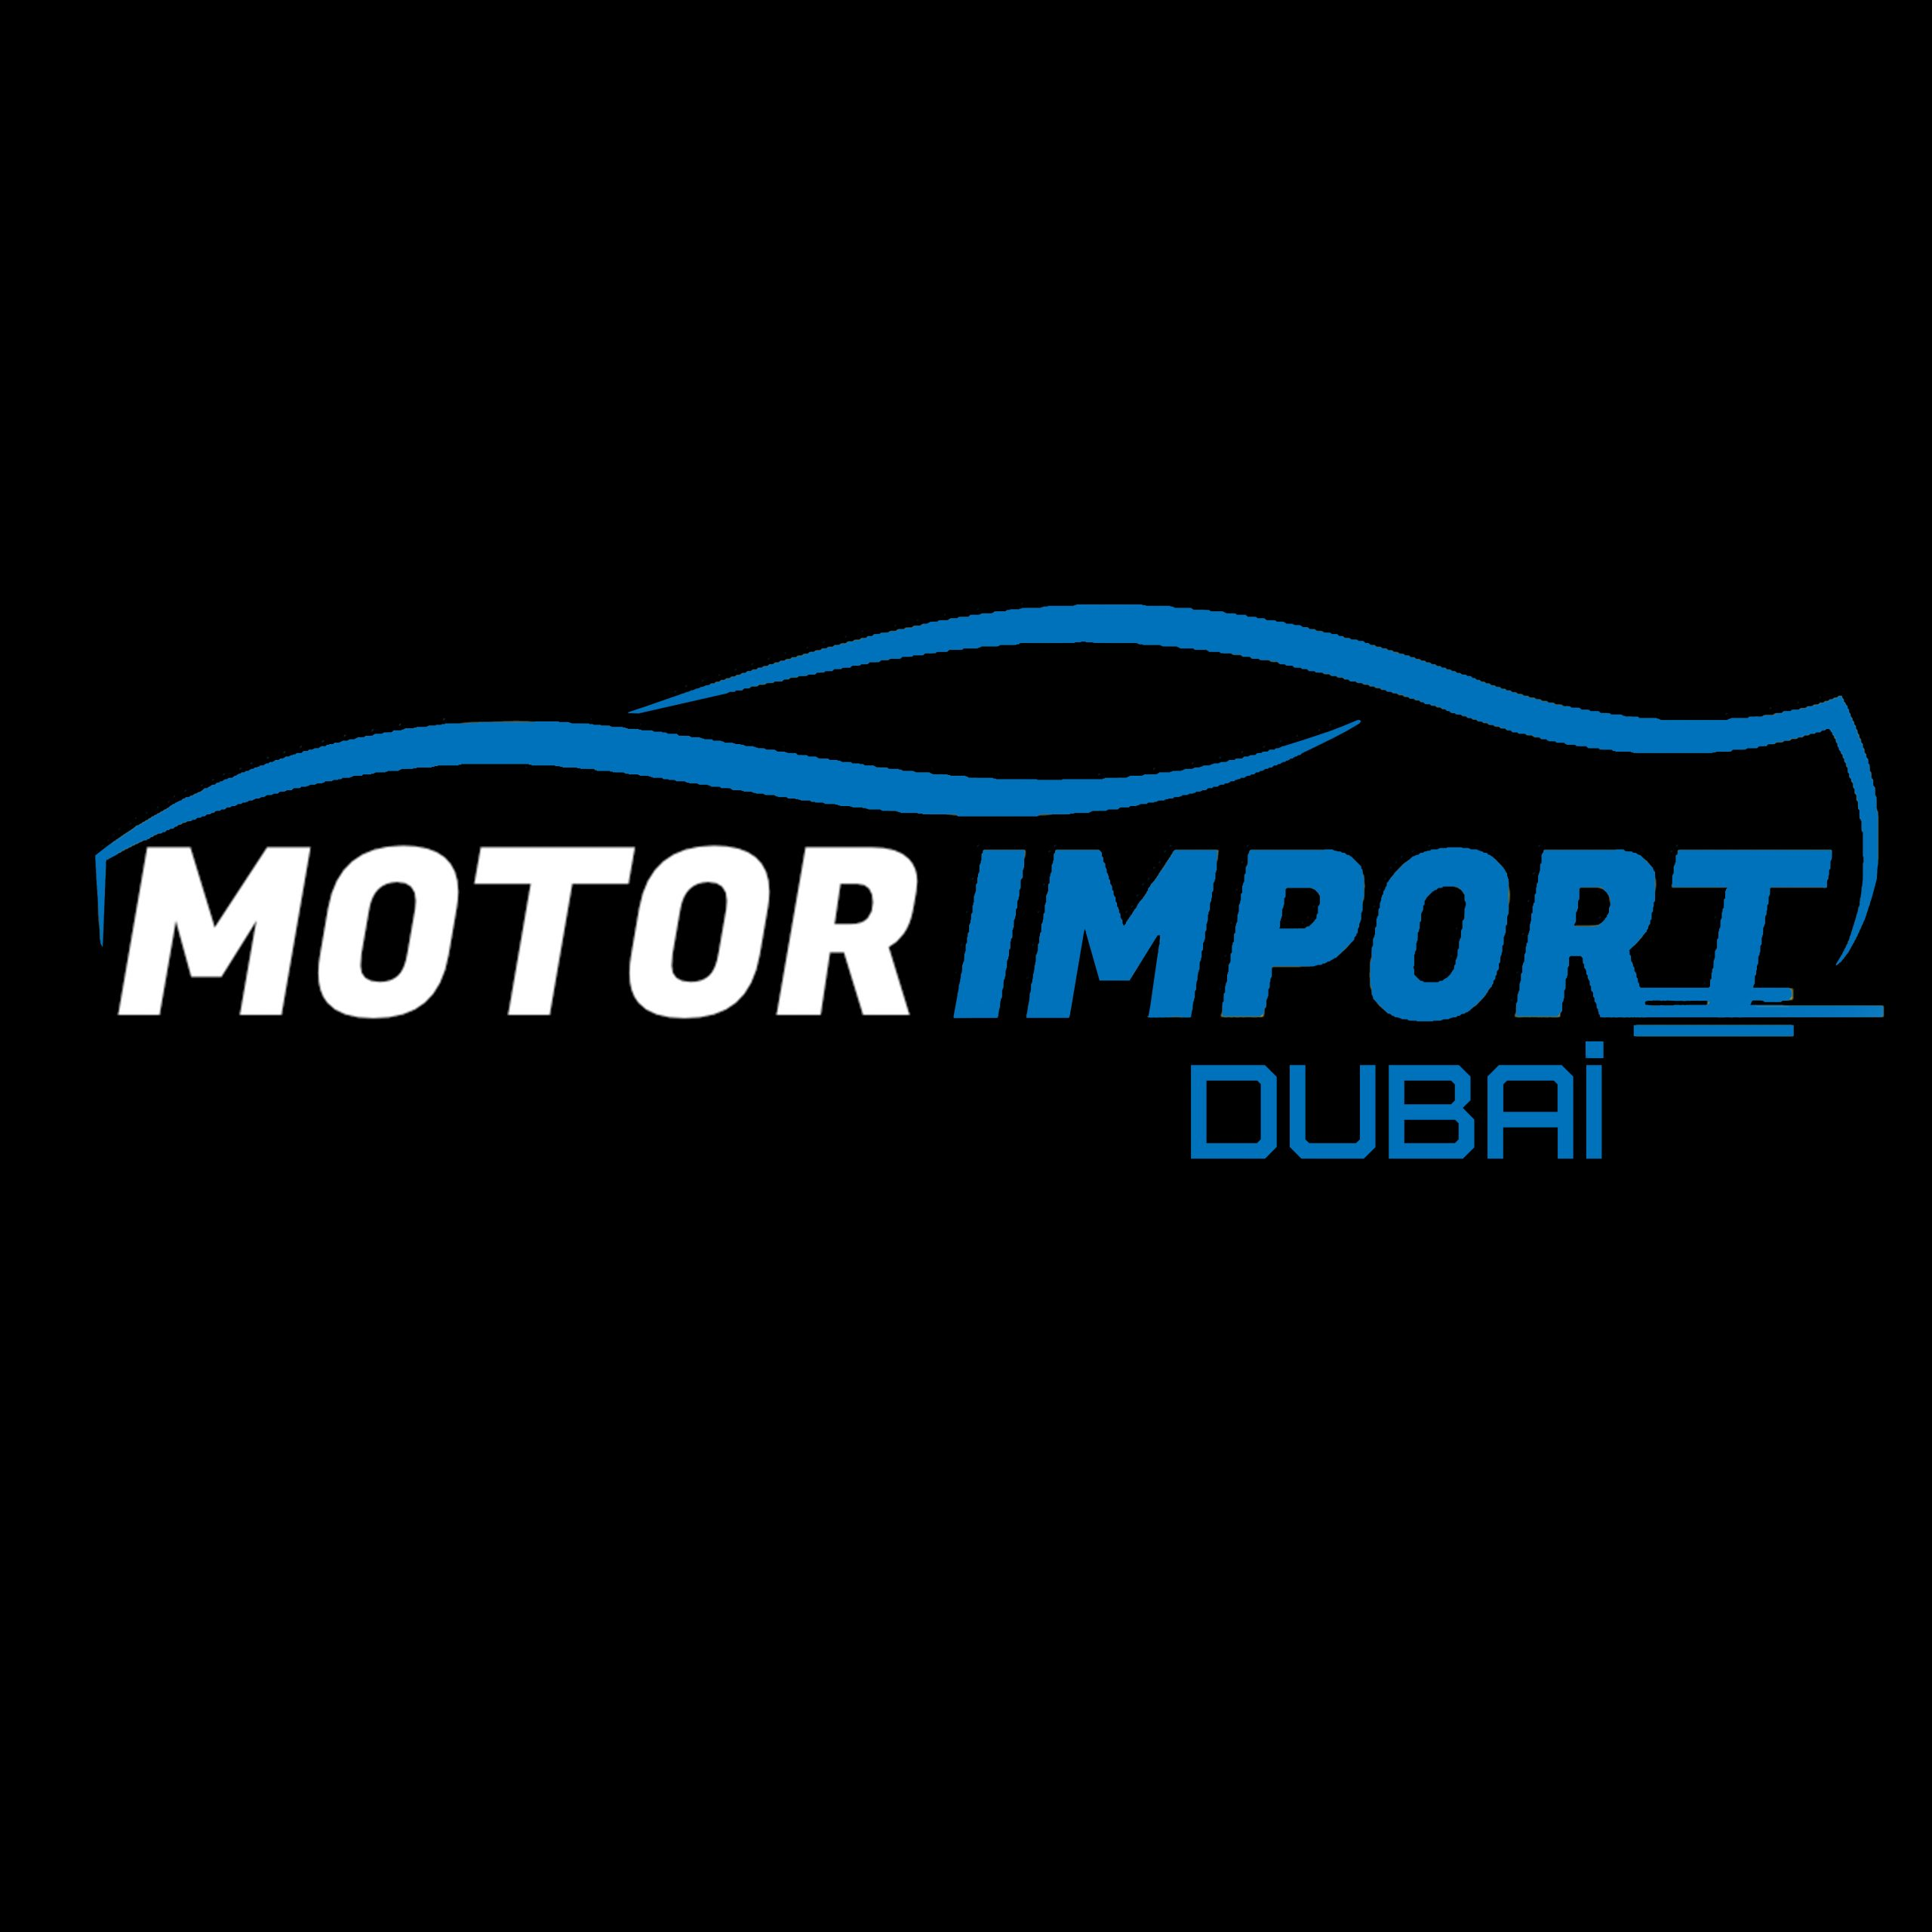 SQUARE EMPTYMOTOR IMPORT DUBAI scaled - TESLA DUBAI importation voiture Dubai TESLA importation vehicule emirats arabe unis motorimport